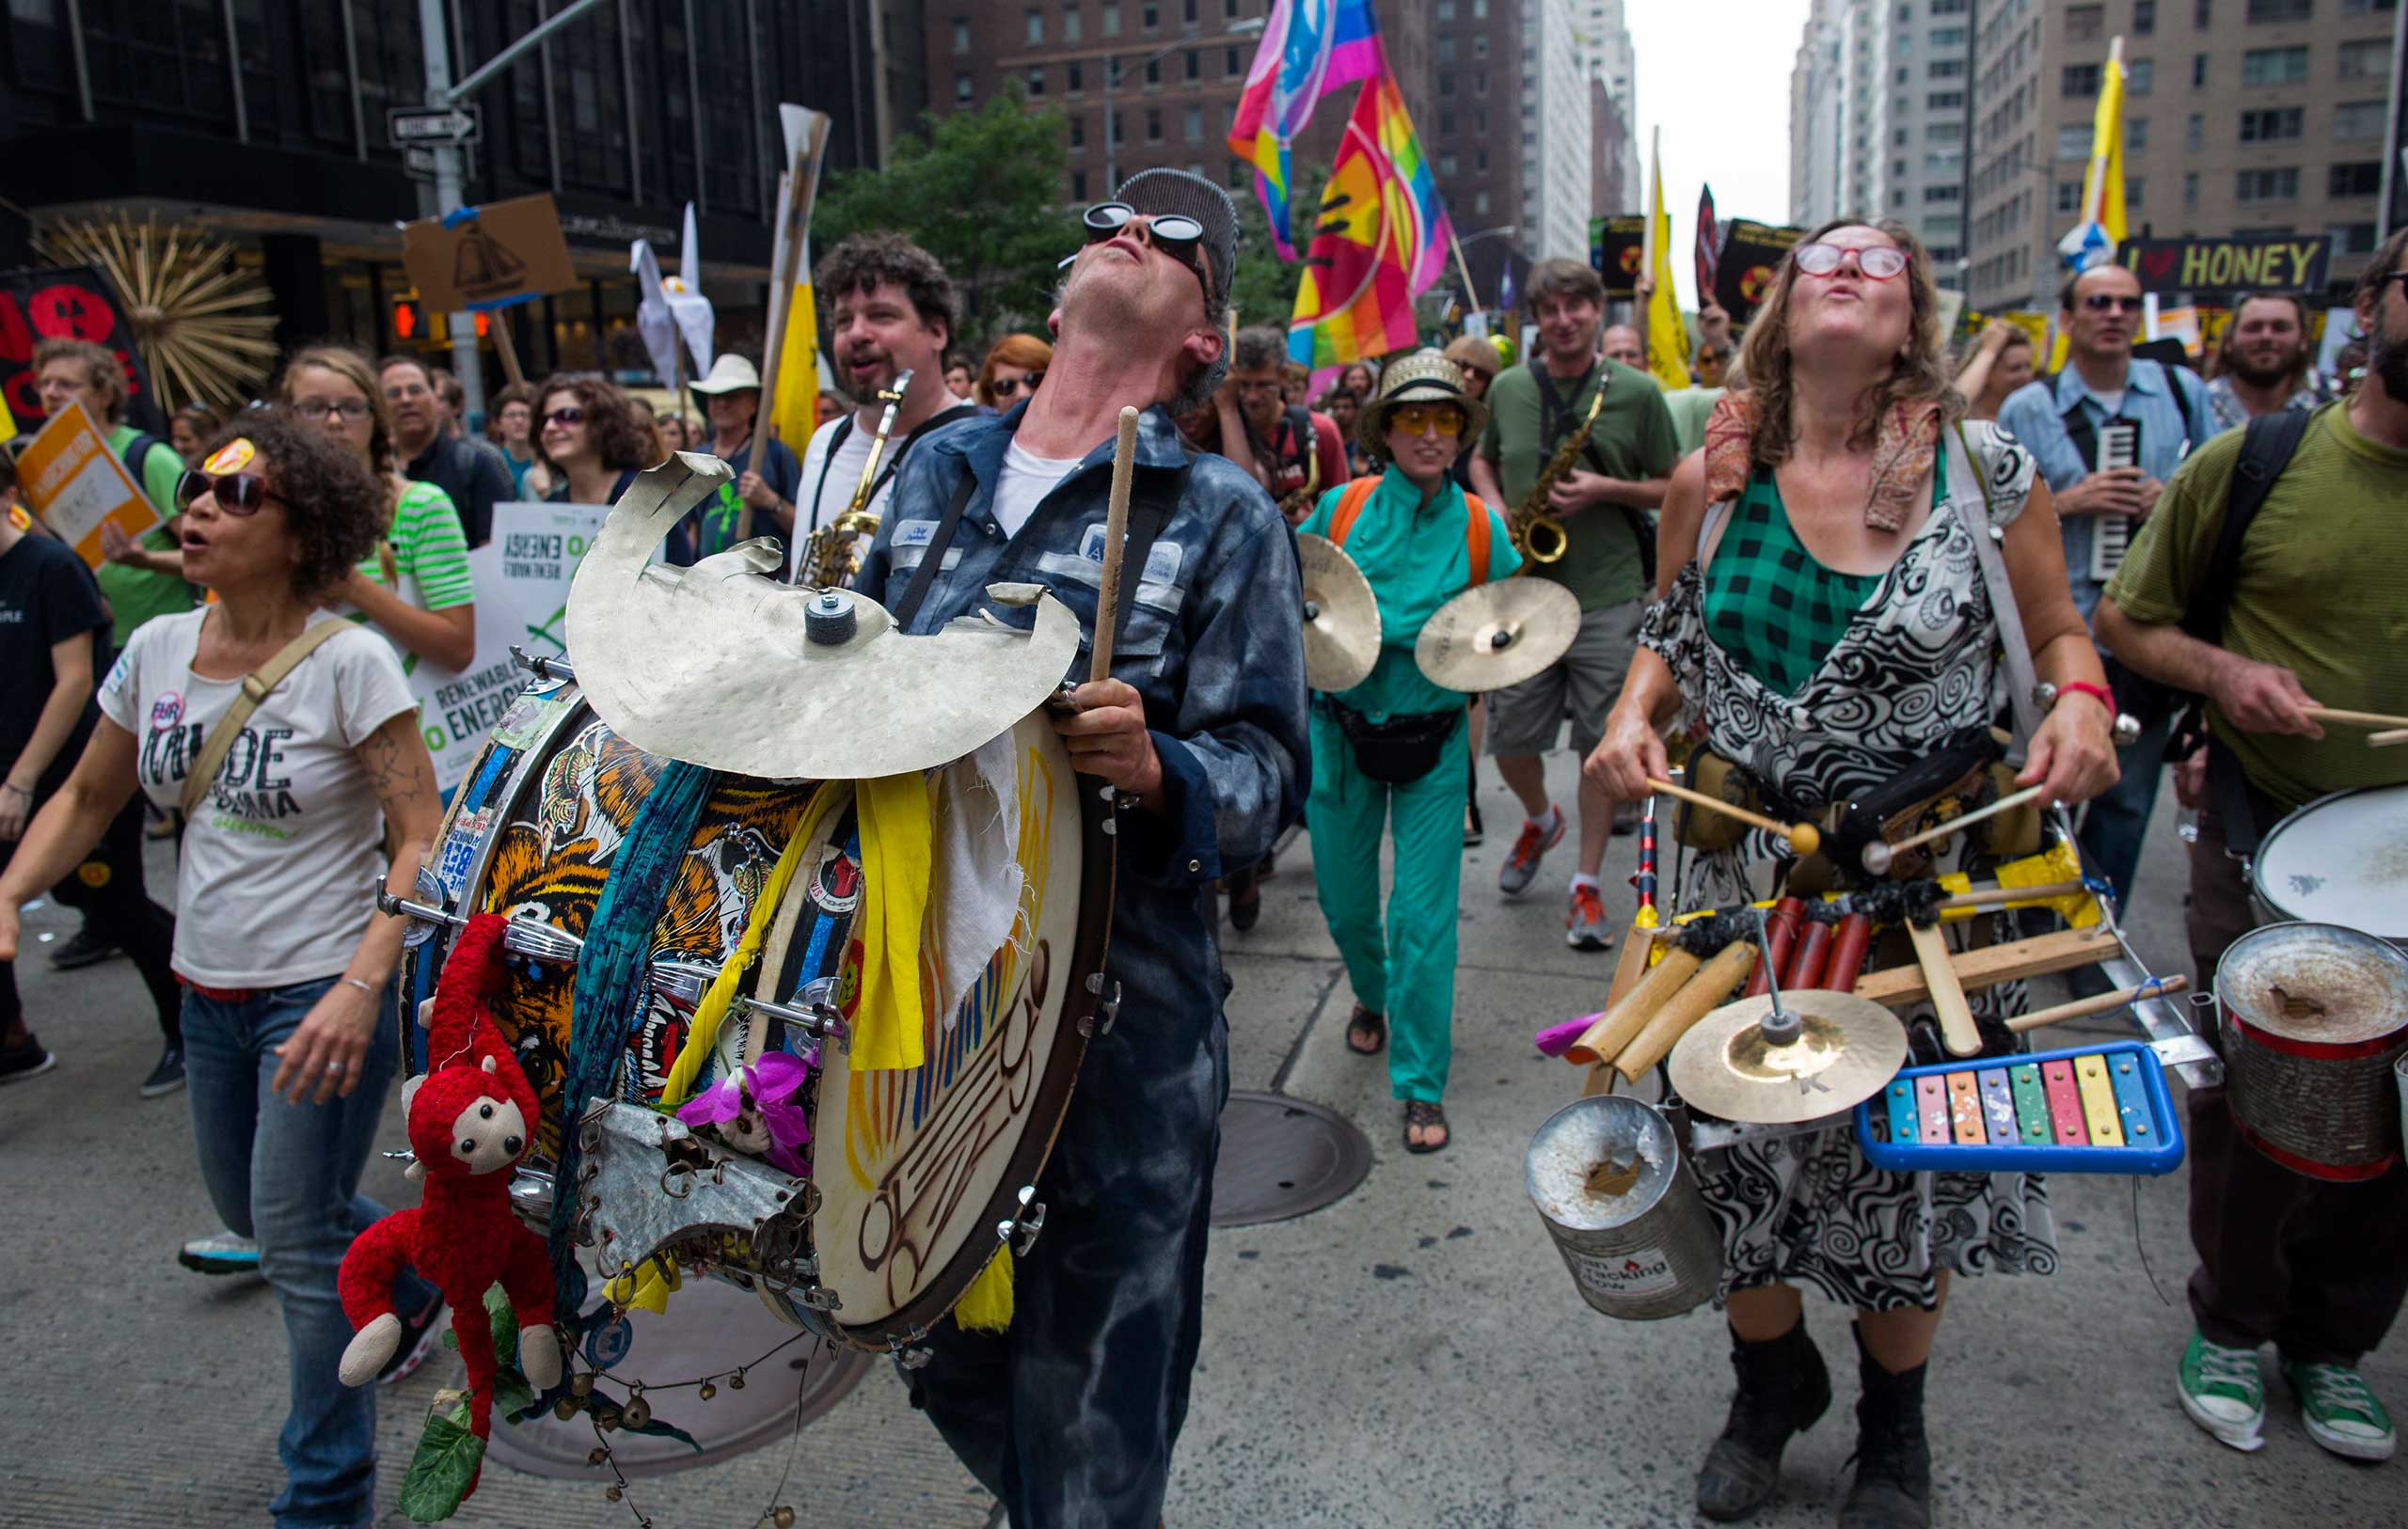 Marchers sing out as they walk along Sixth Ave. during the People's Climate March in New York, Sept. 21, 2014.